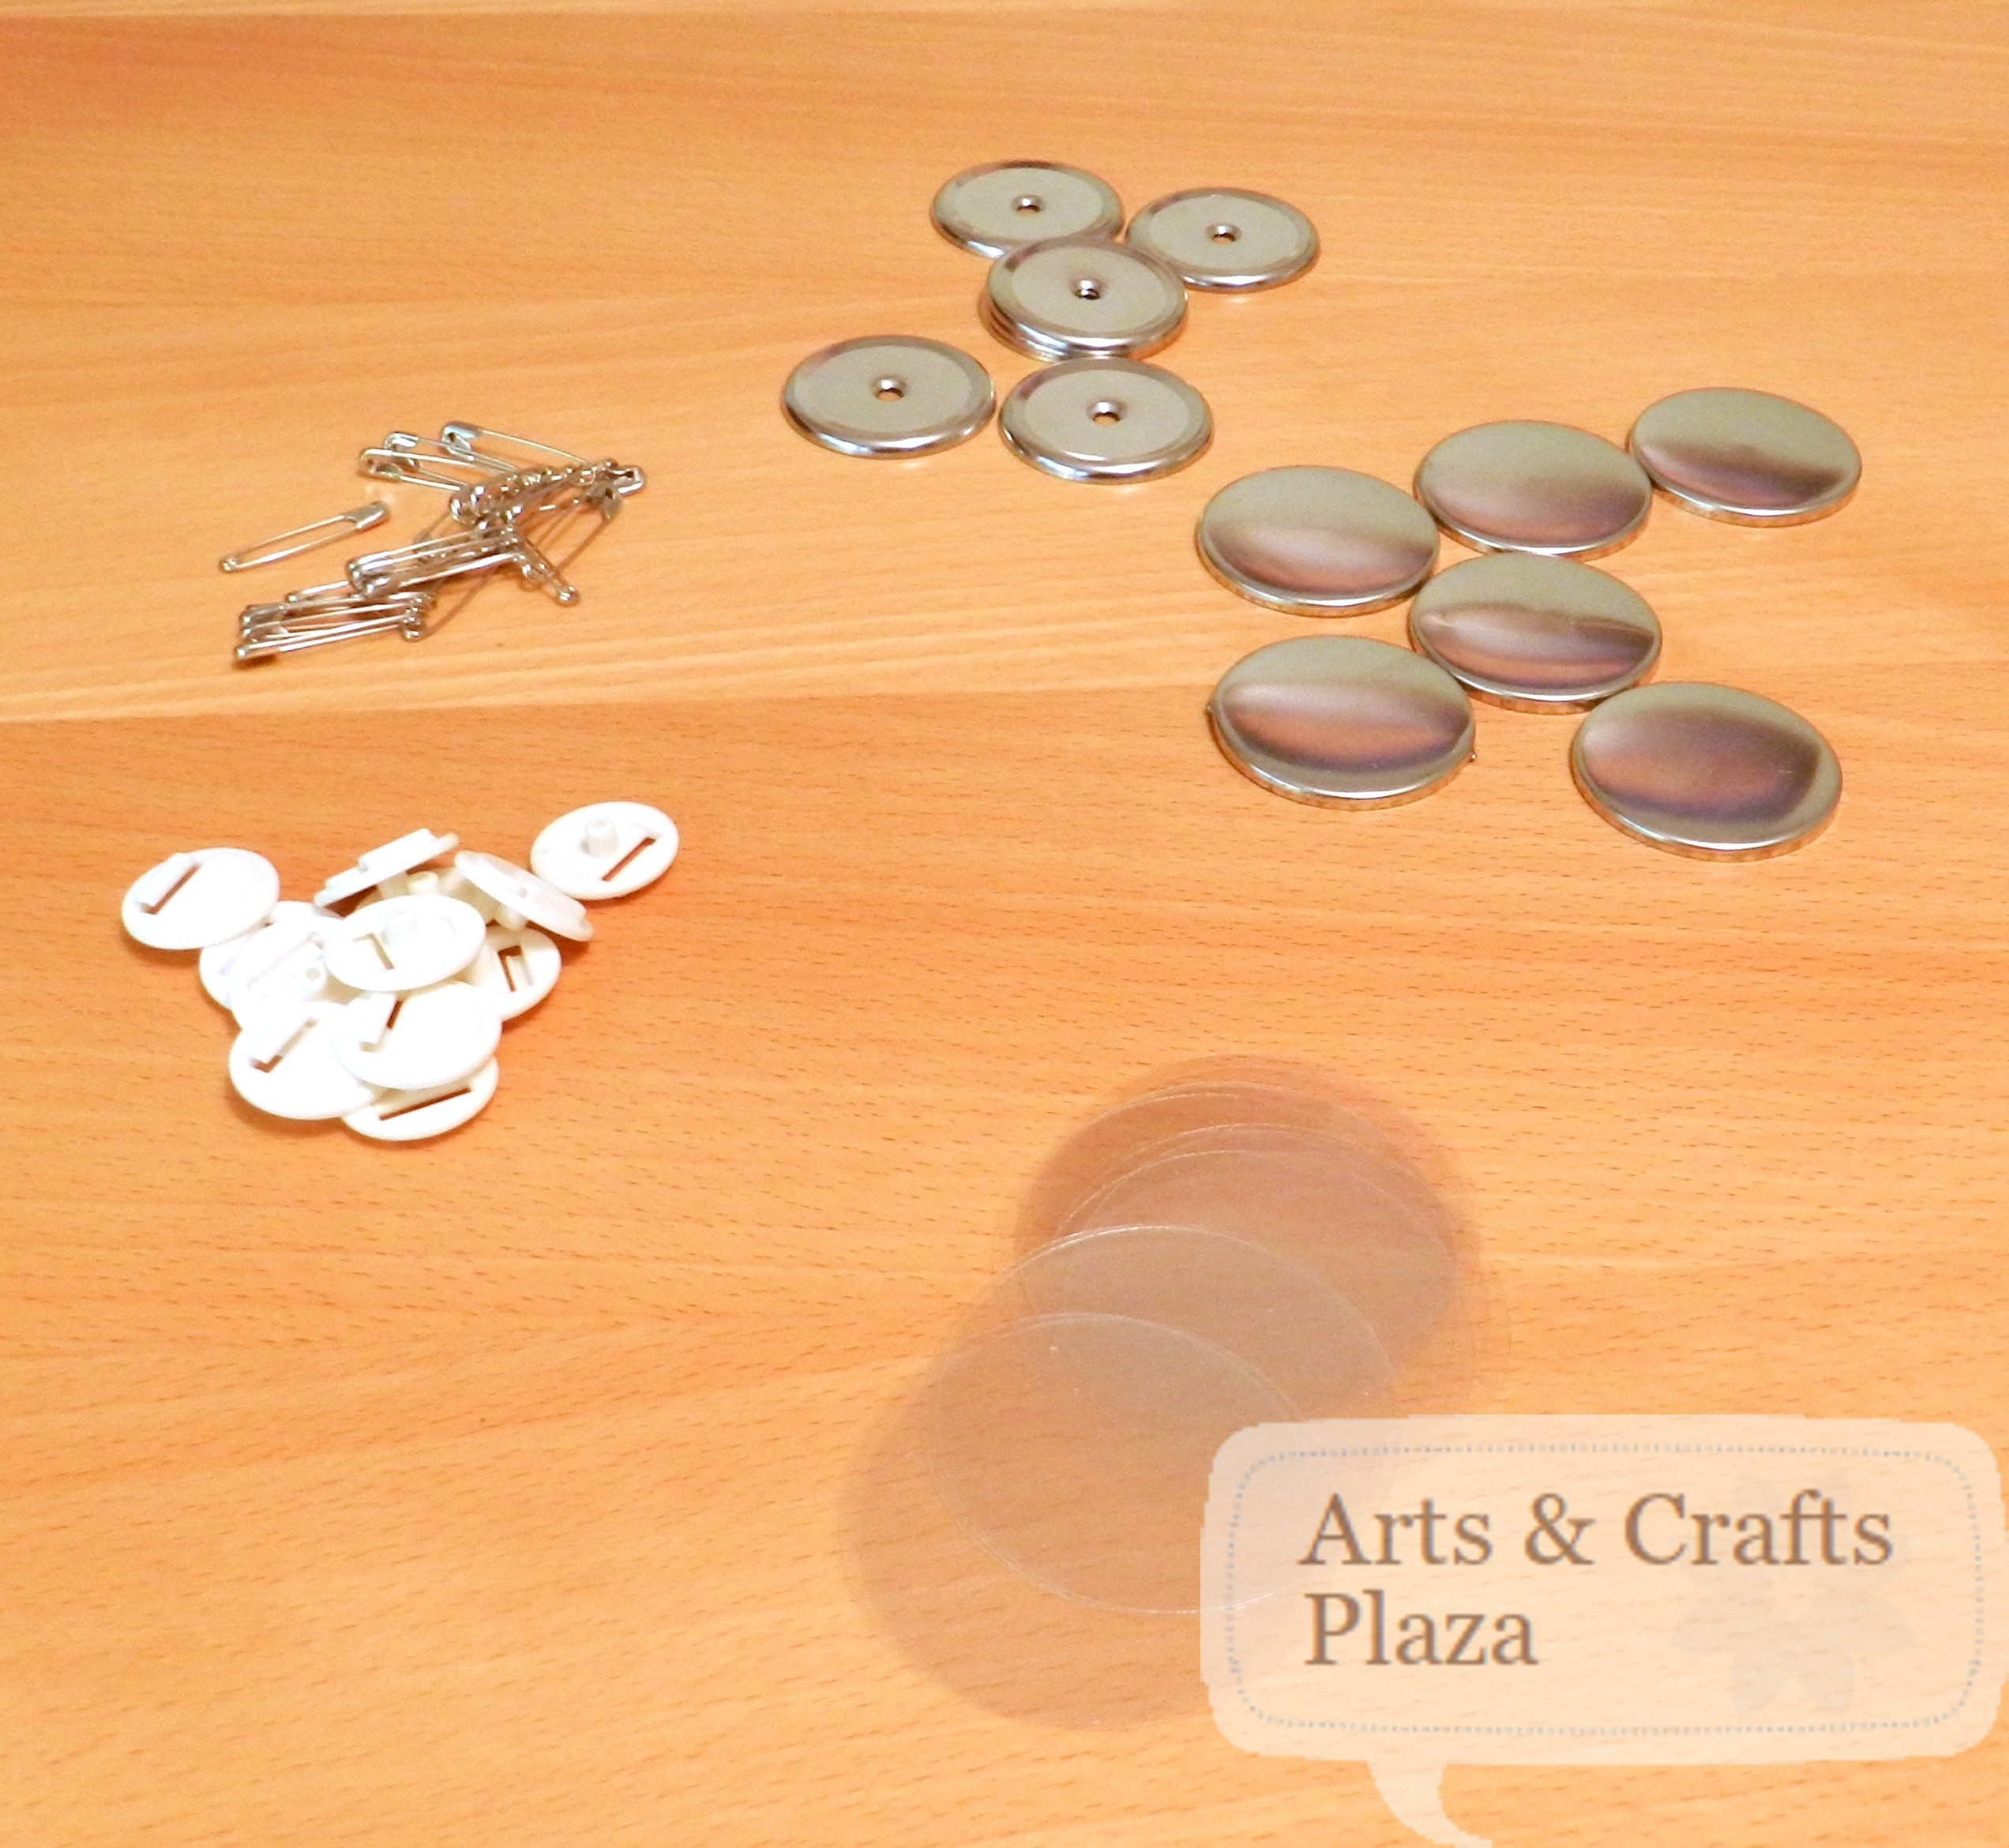 Button maker 4 arts crafts plaza for Michaels crafts button maker